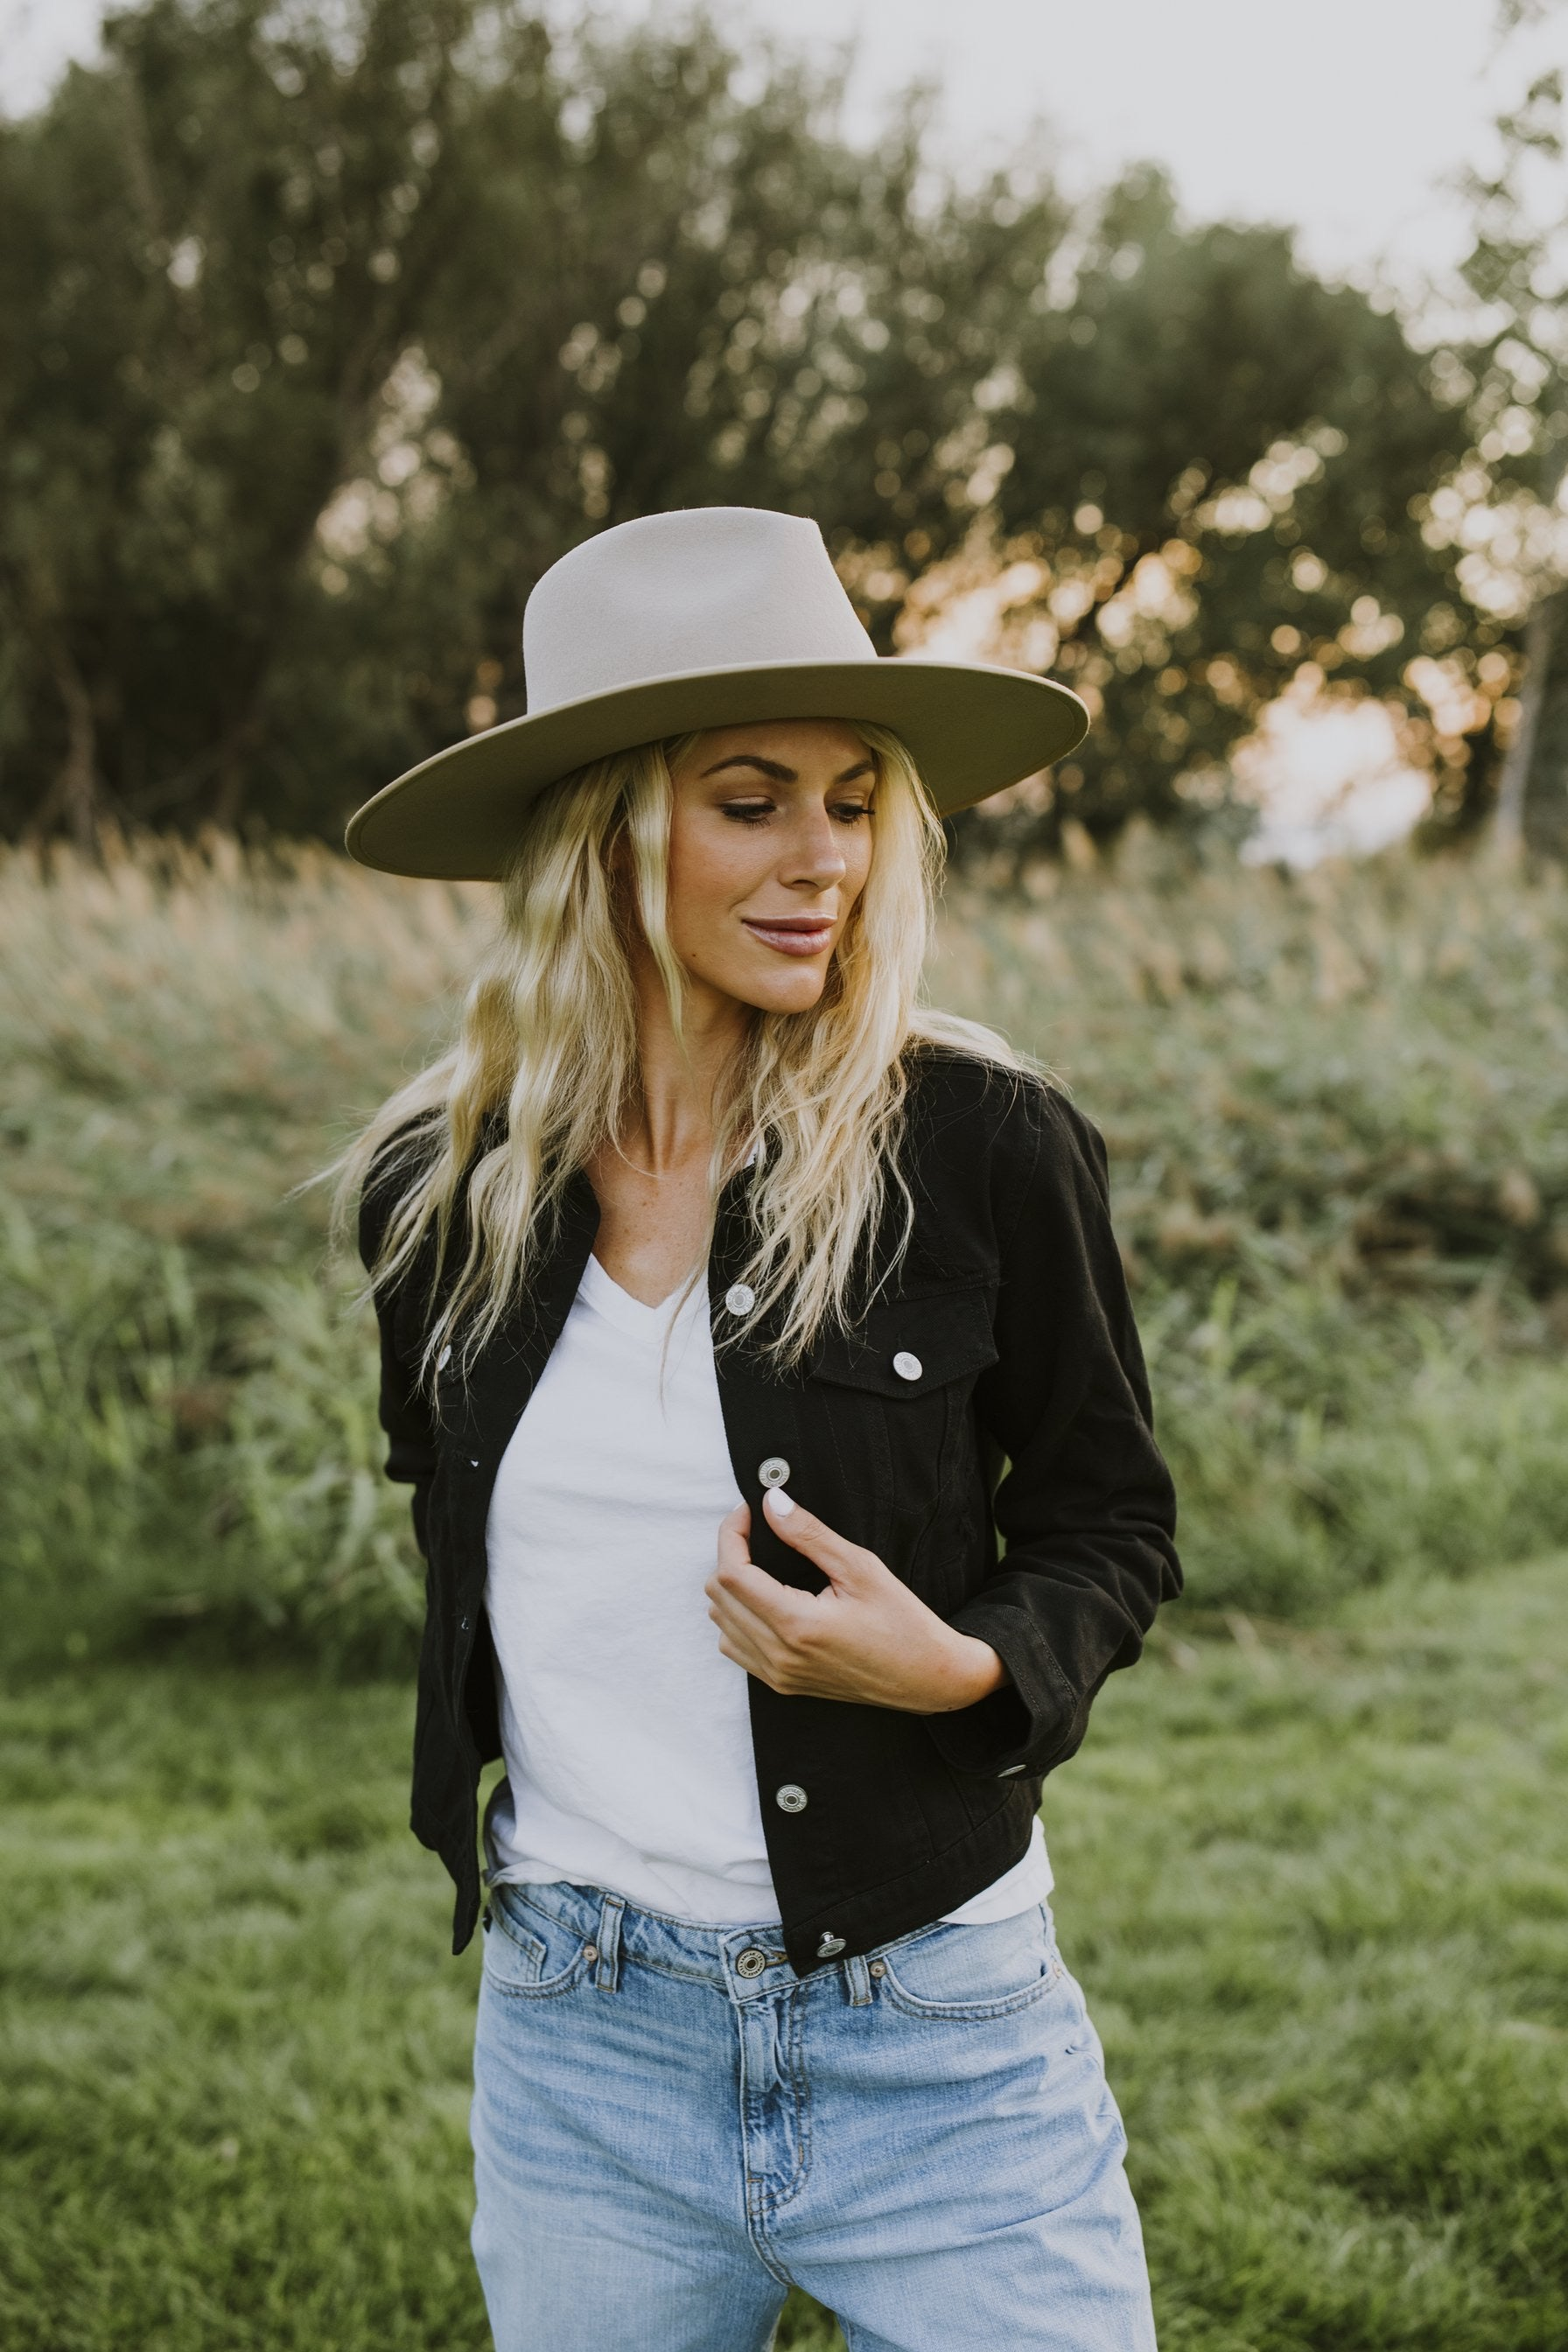 boutique, fall outfits, outfit ideas, fedora hat, fedora, fedora hat, fedora hat women, taupe fedora, wide brim fedora, fall outfits, women's fedora, light brown fedora, hats, family photo outfits, boutique hats, cute hats, womens fedora hat outfit, fall 2020, outfits, casual outfits, fedora outfit, wide brim fedora light brown, fall 2020 fashion trends, wide brim fedora taupe, outfit inspirations, cute fedora hat, outfits fall 2020, cute fall outfits, winter fedora hat outfit, how to wear a fedora casually